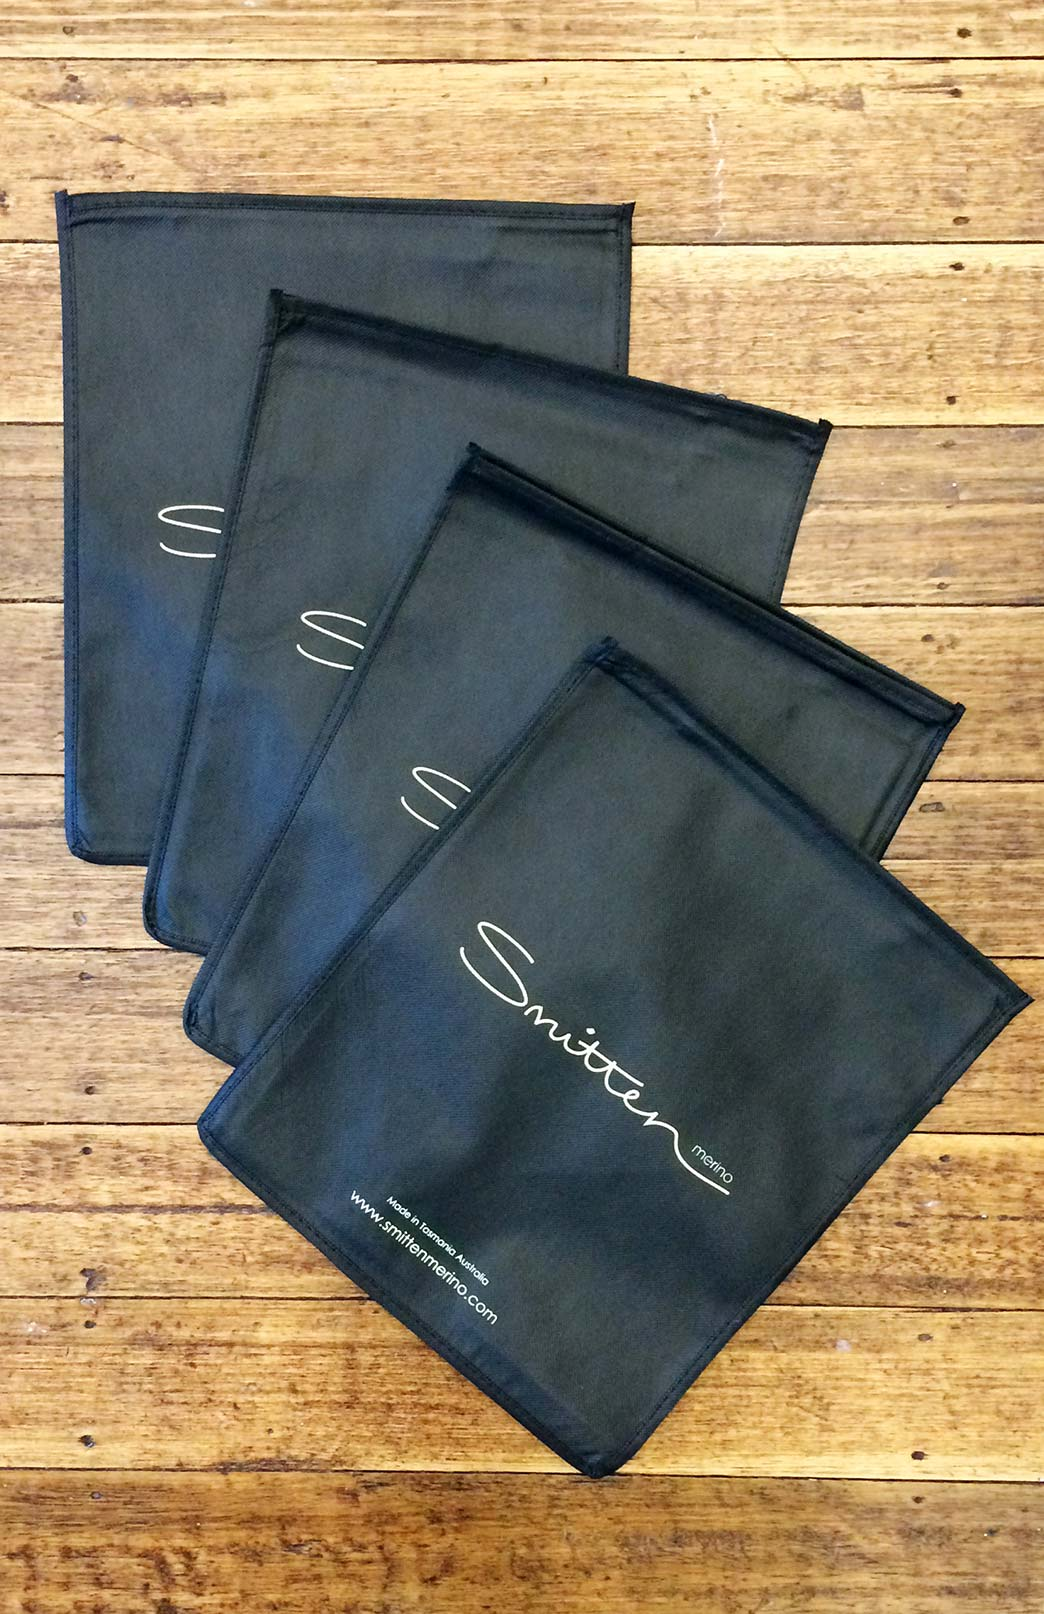 Smitten Clothing Bags - Multi Pack - Unique Smitten Branded Clothing Protection and Travel Bags - Smitten Merino Tasmania Australia